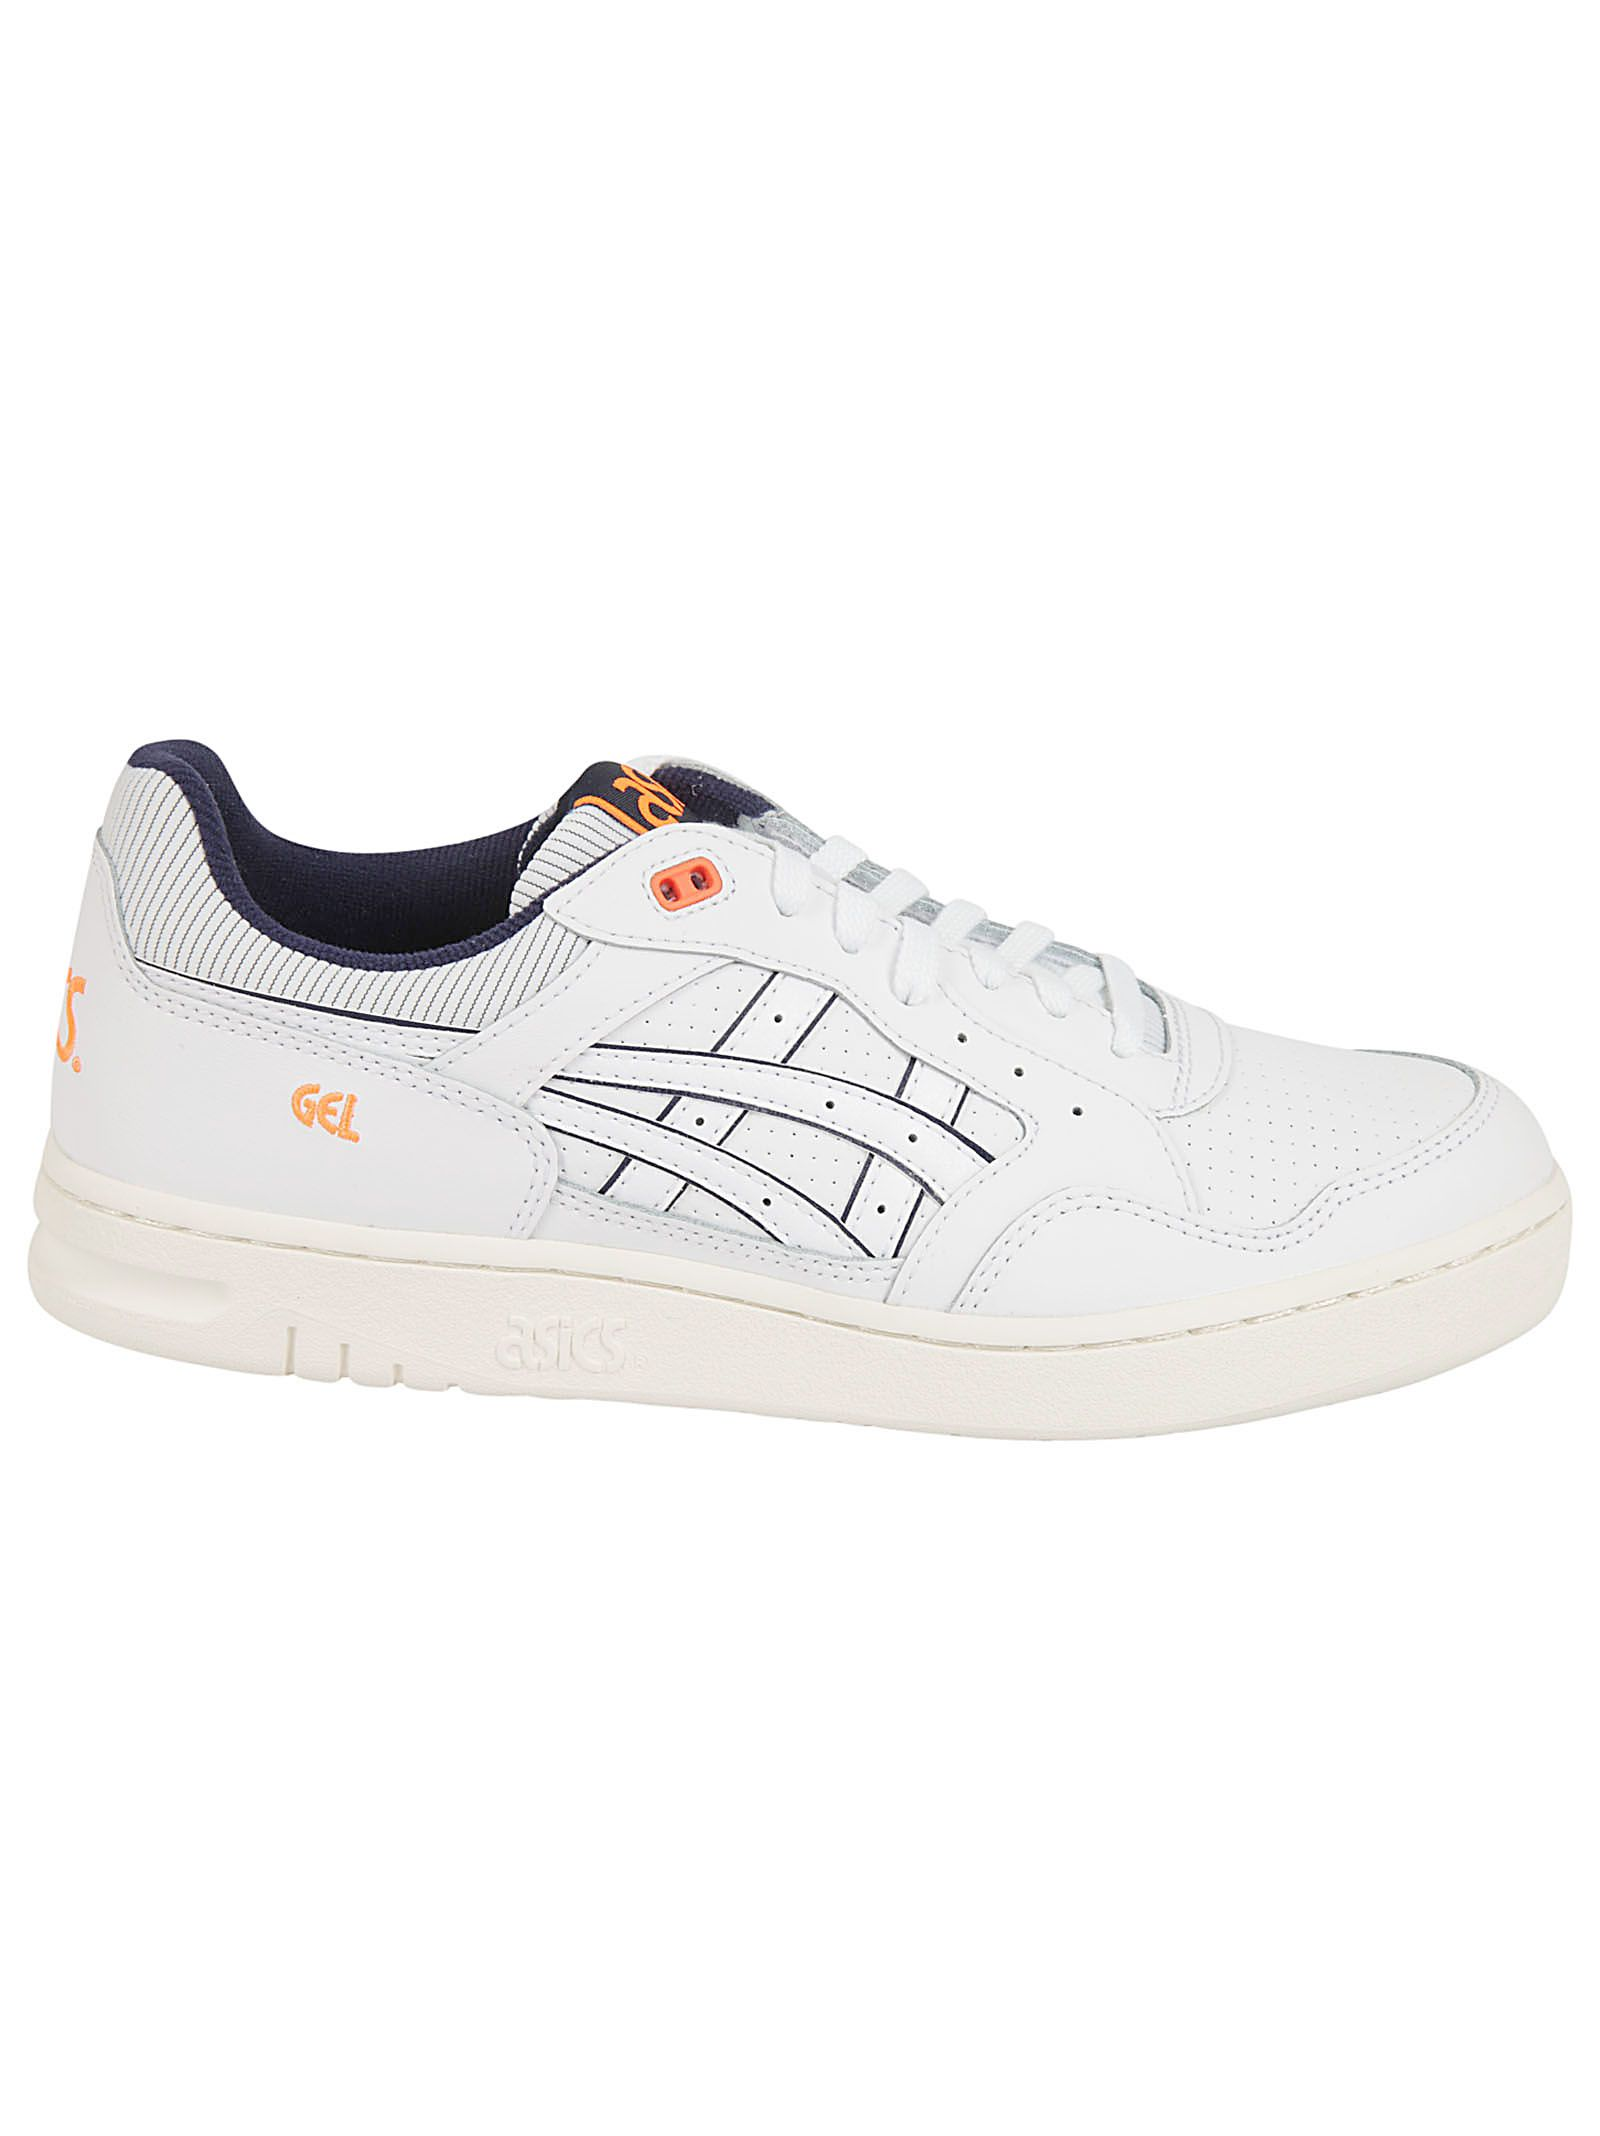 ASICS | Asics Gel-circuit Sneakers | Clouty